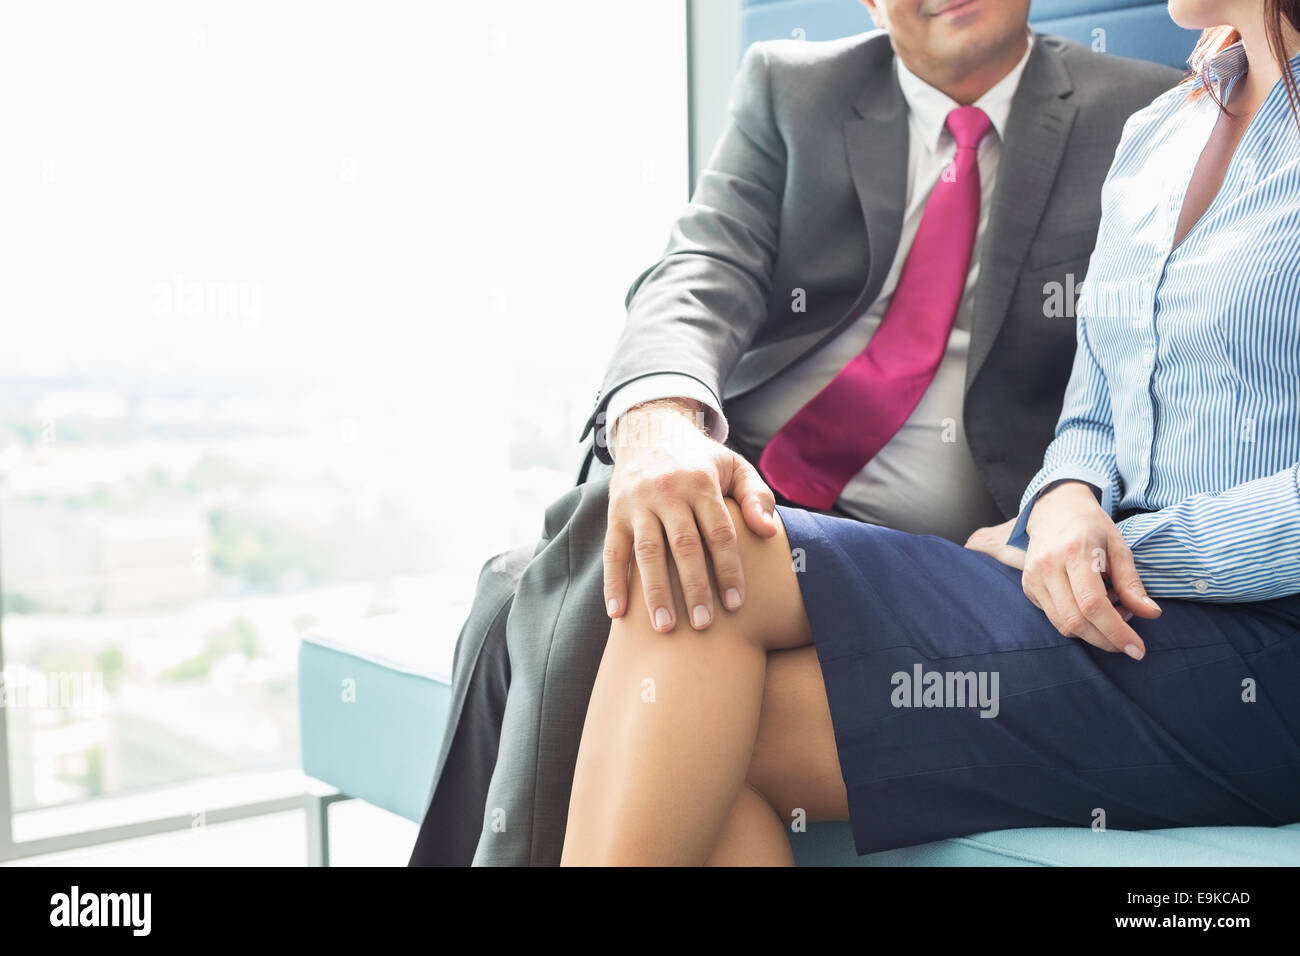 Midsection of businessman flirting with female colleague in office - Stock Image